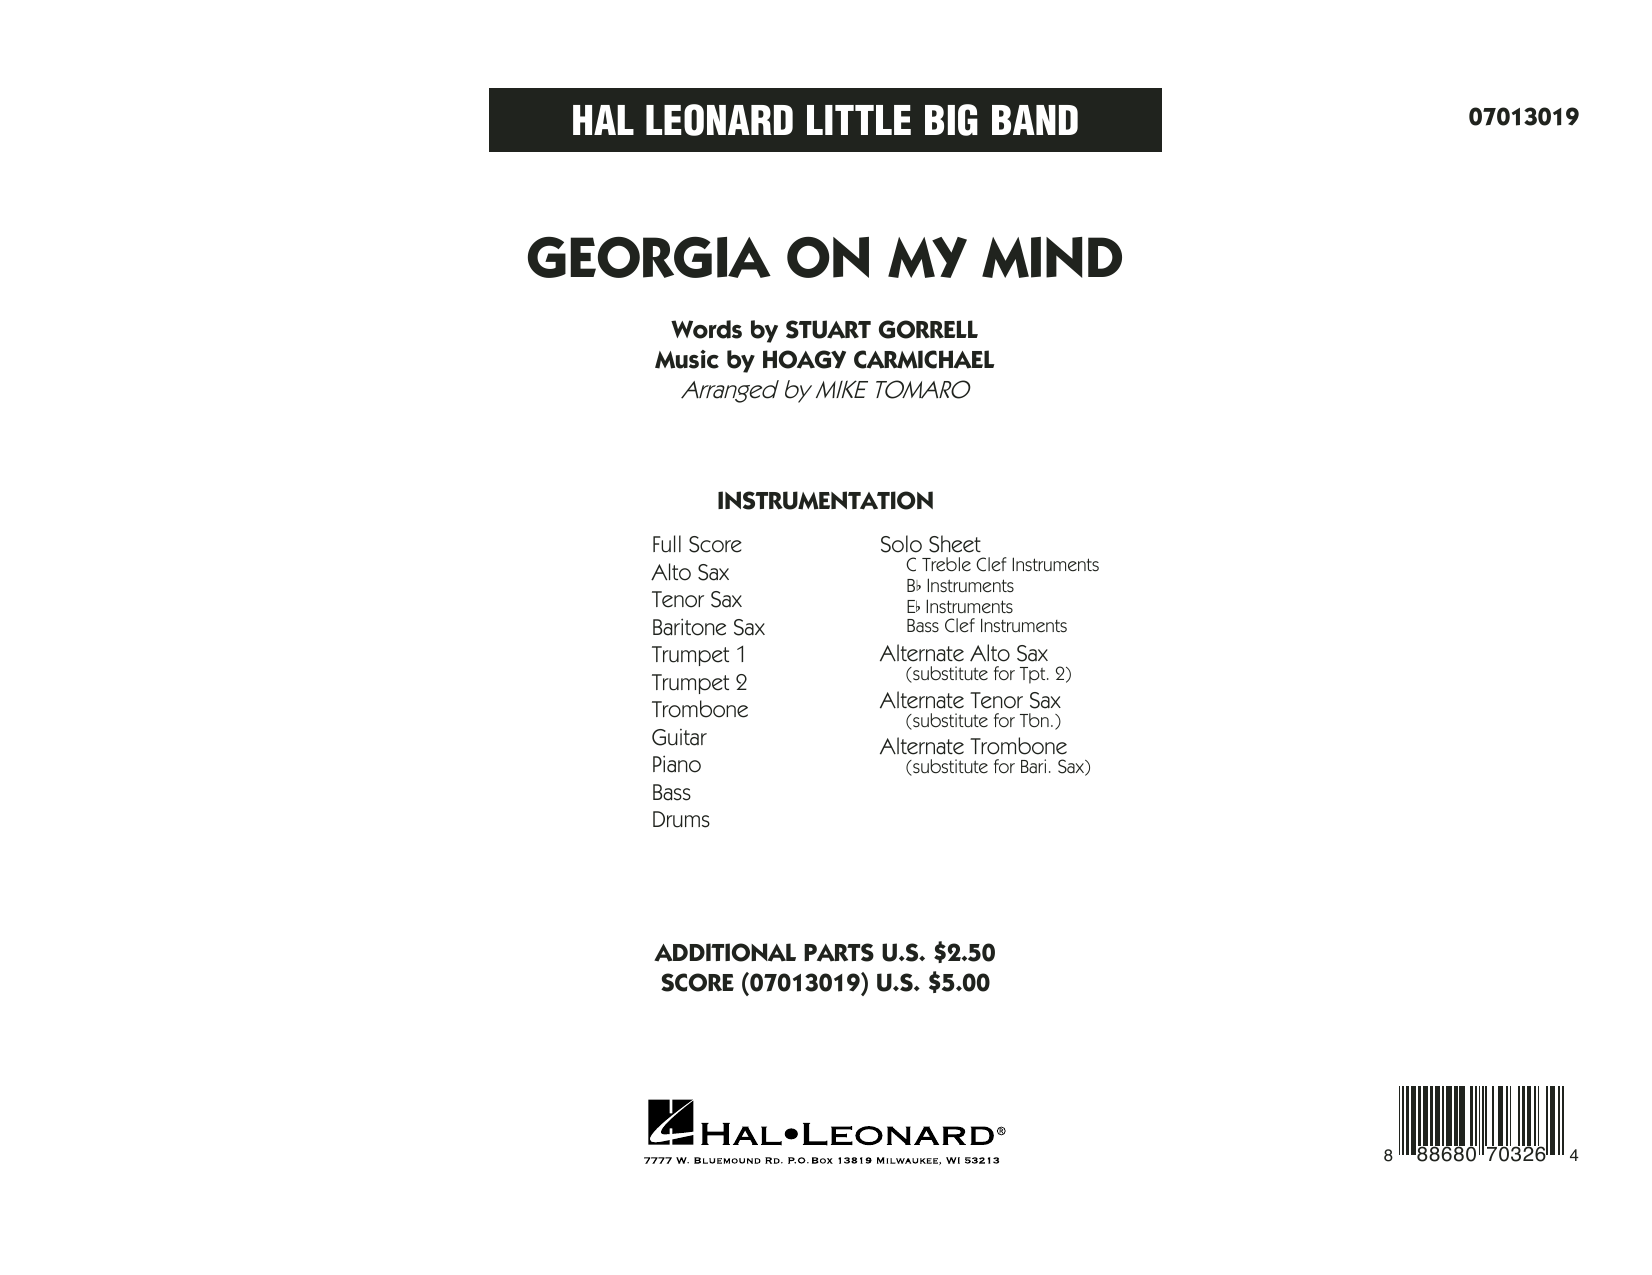 Georgia on My Mind - Full Score (Jazz Ensemble)